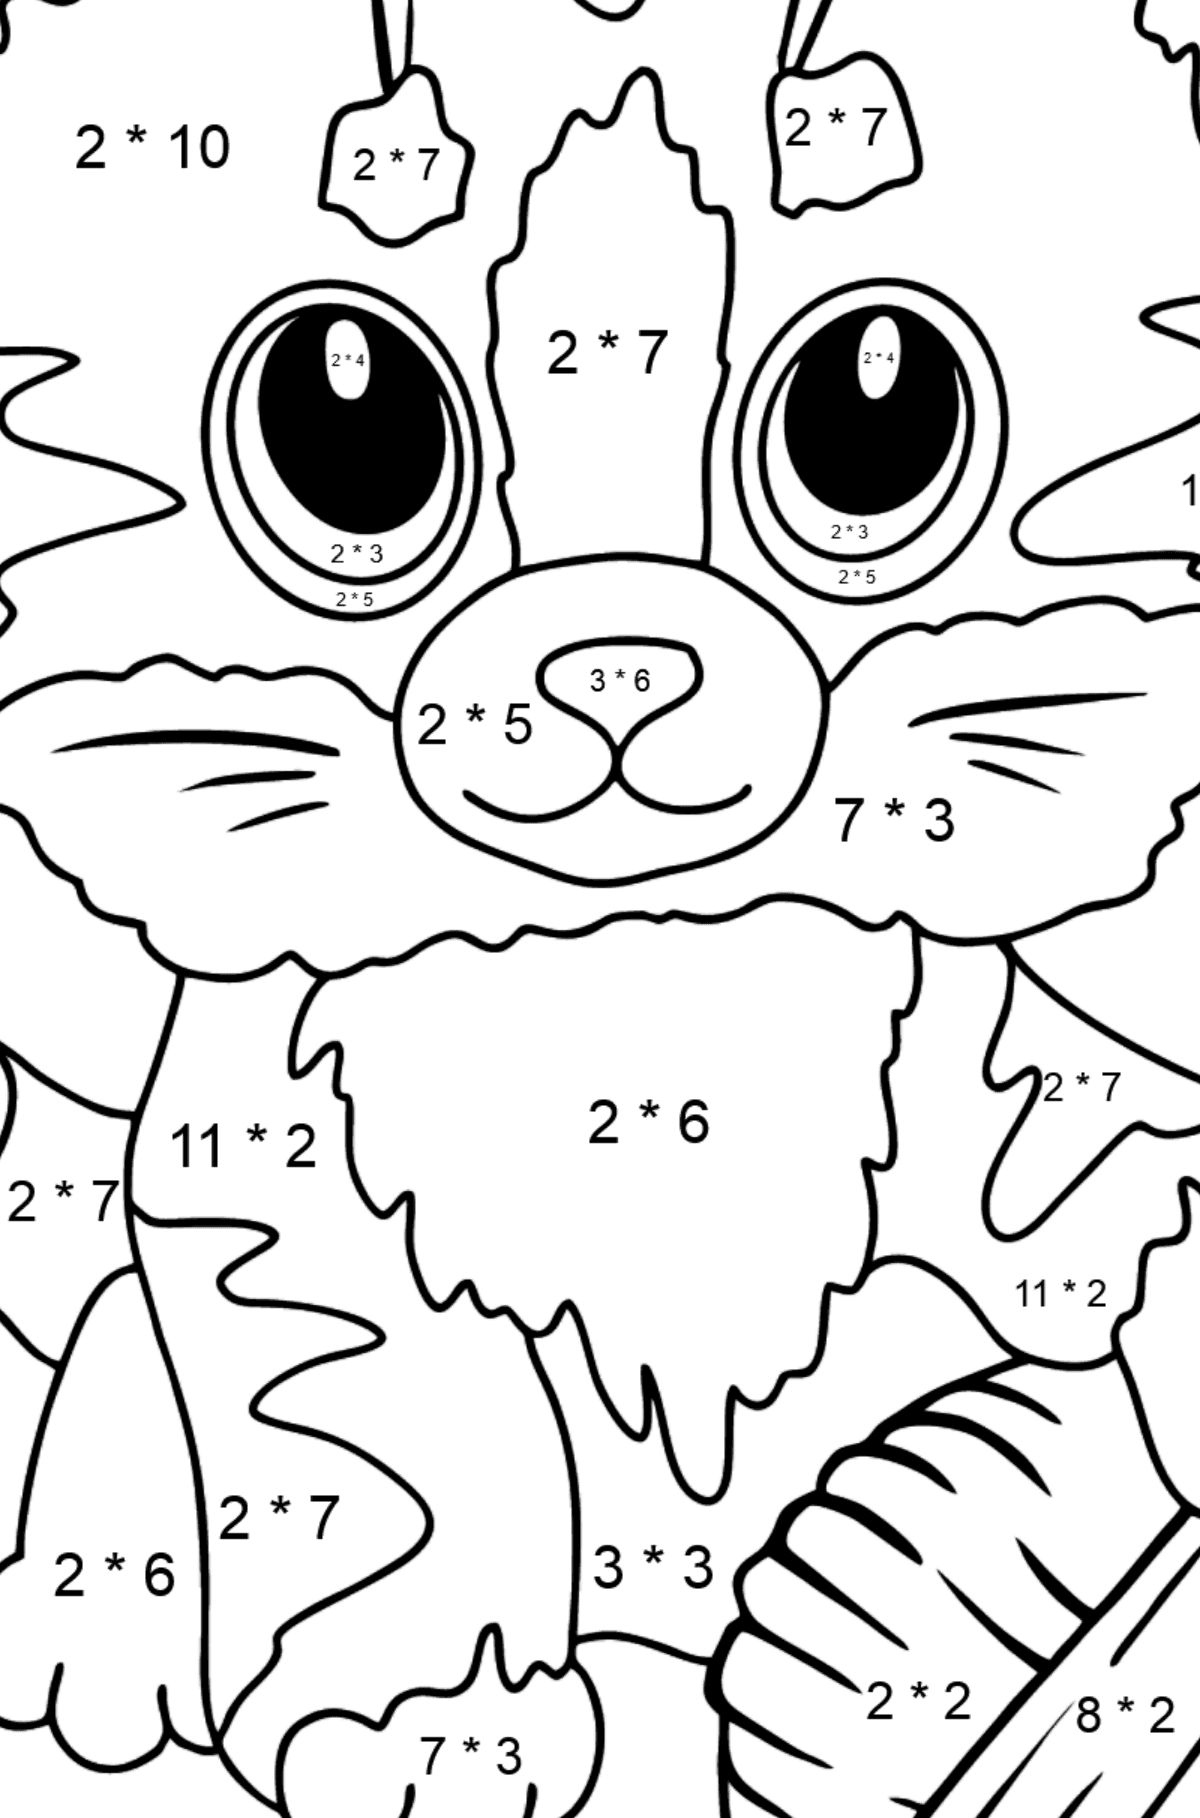 Cute Cat Coloring Page - Math Coloring - Multiplication for Kids